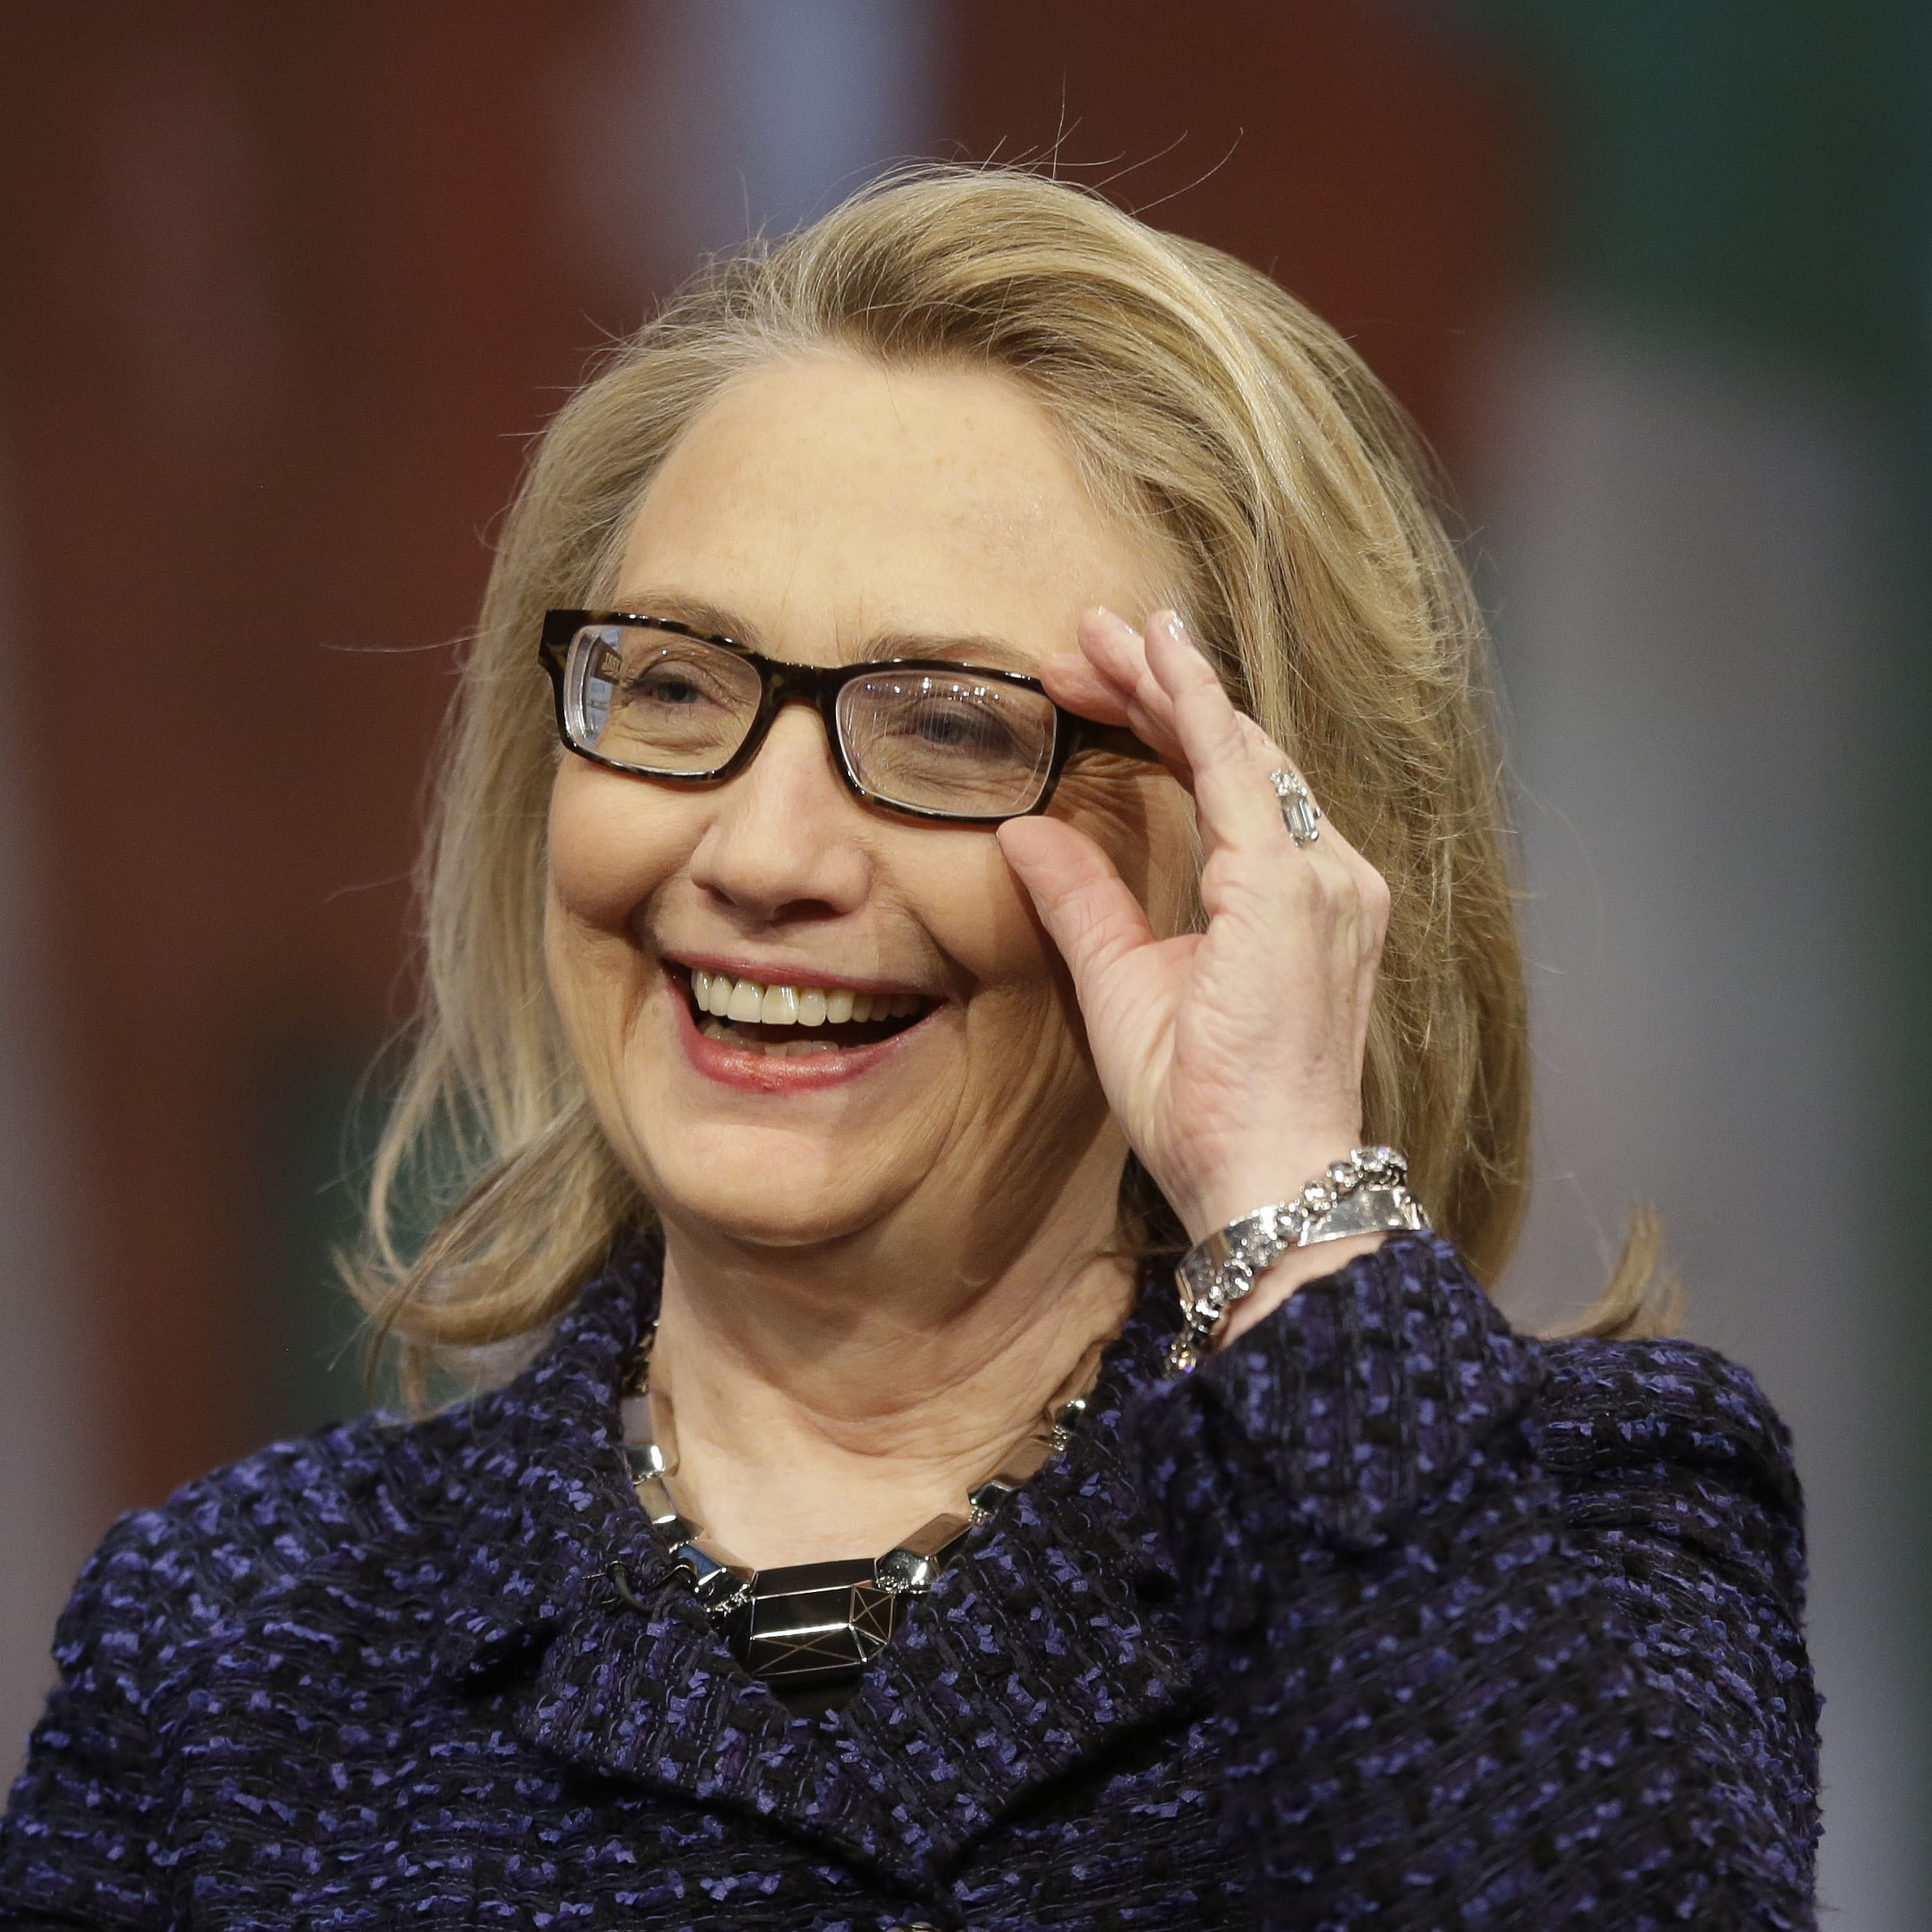 Hillary Clinton's new book set for 2014 release date by Simon & Schuster - peoplewhowrite